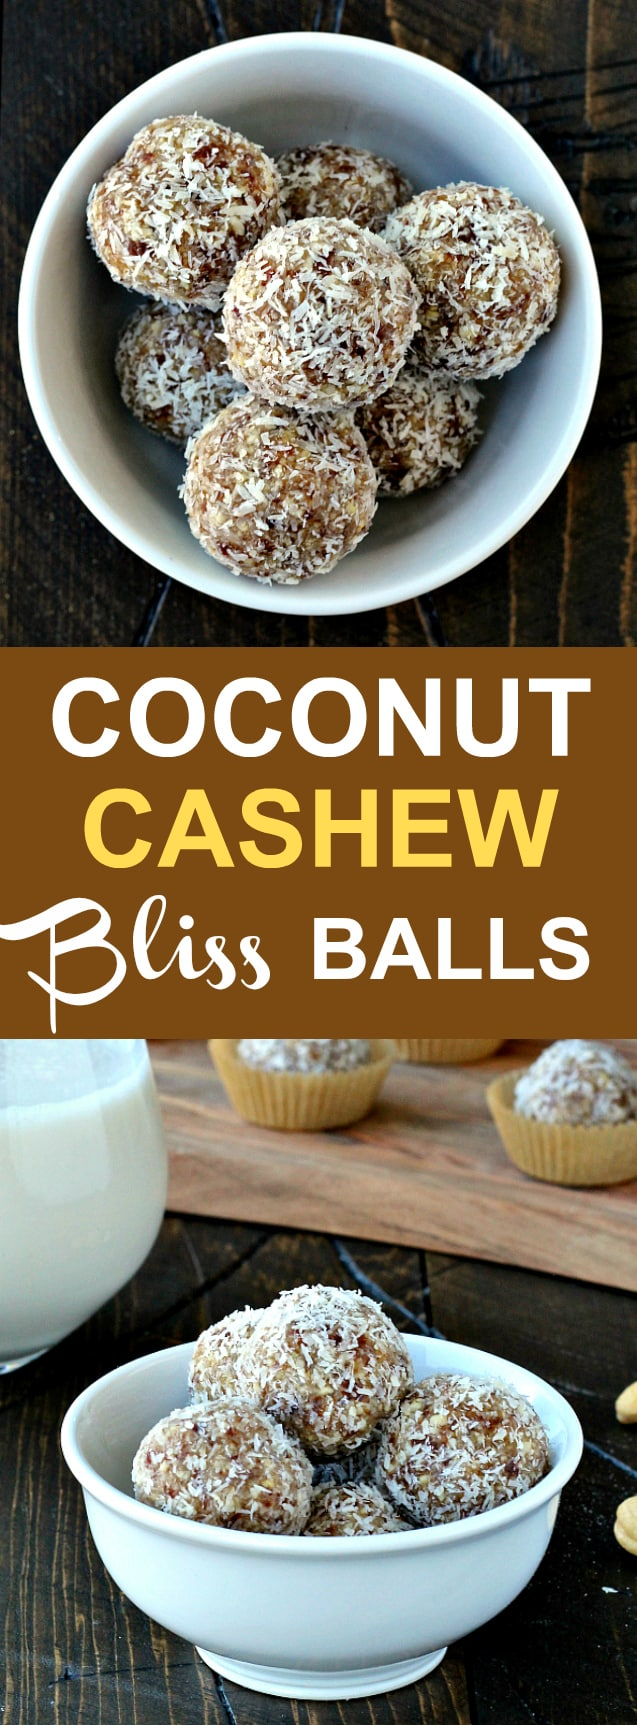 Coconut Cashew Bliss Balls- coconut and cashews come together for the perfect afternoon indulgence!